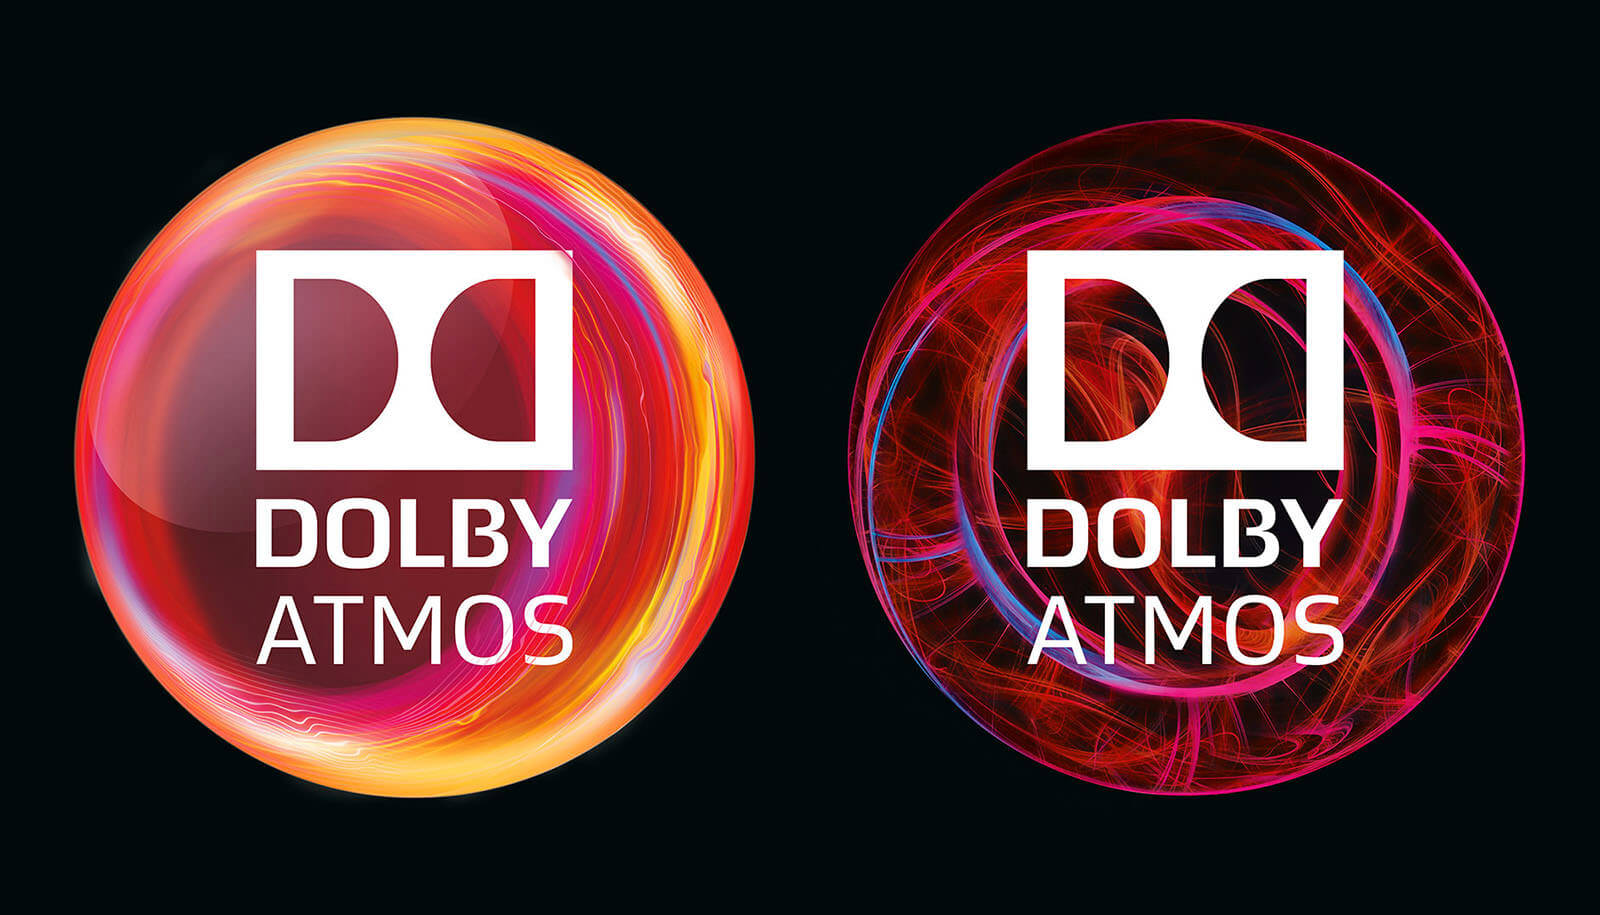 dolby digital dolby atmos packaging logo - red